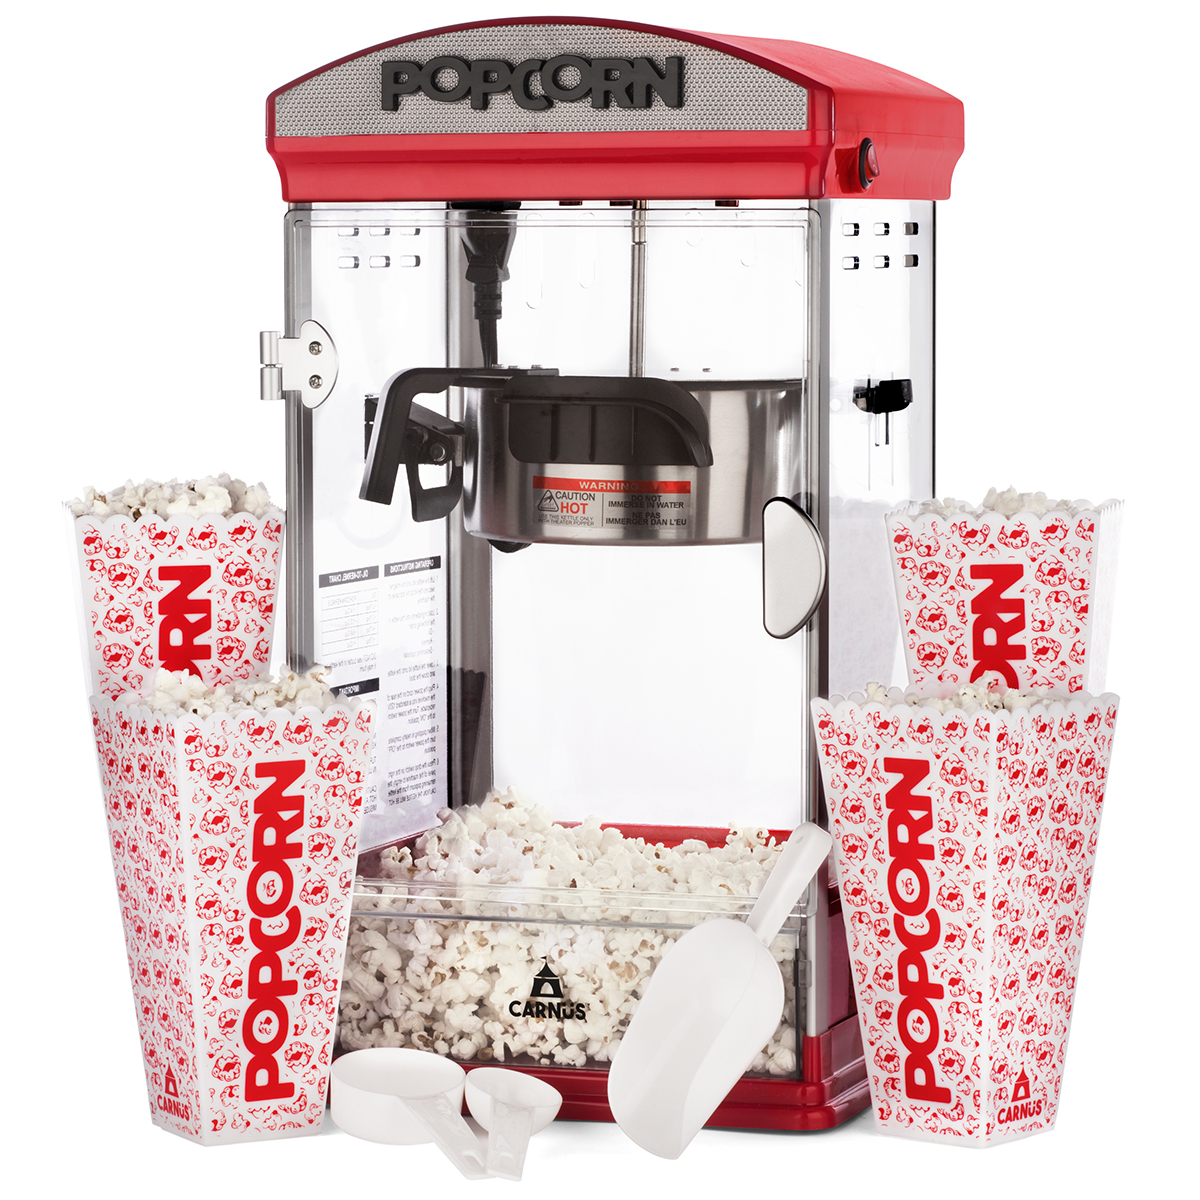 Carnus Popcorn Maker Carnus Premium Cotton Candy Products